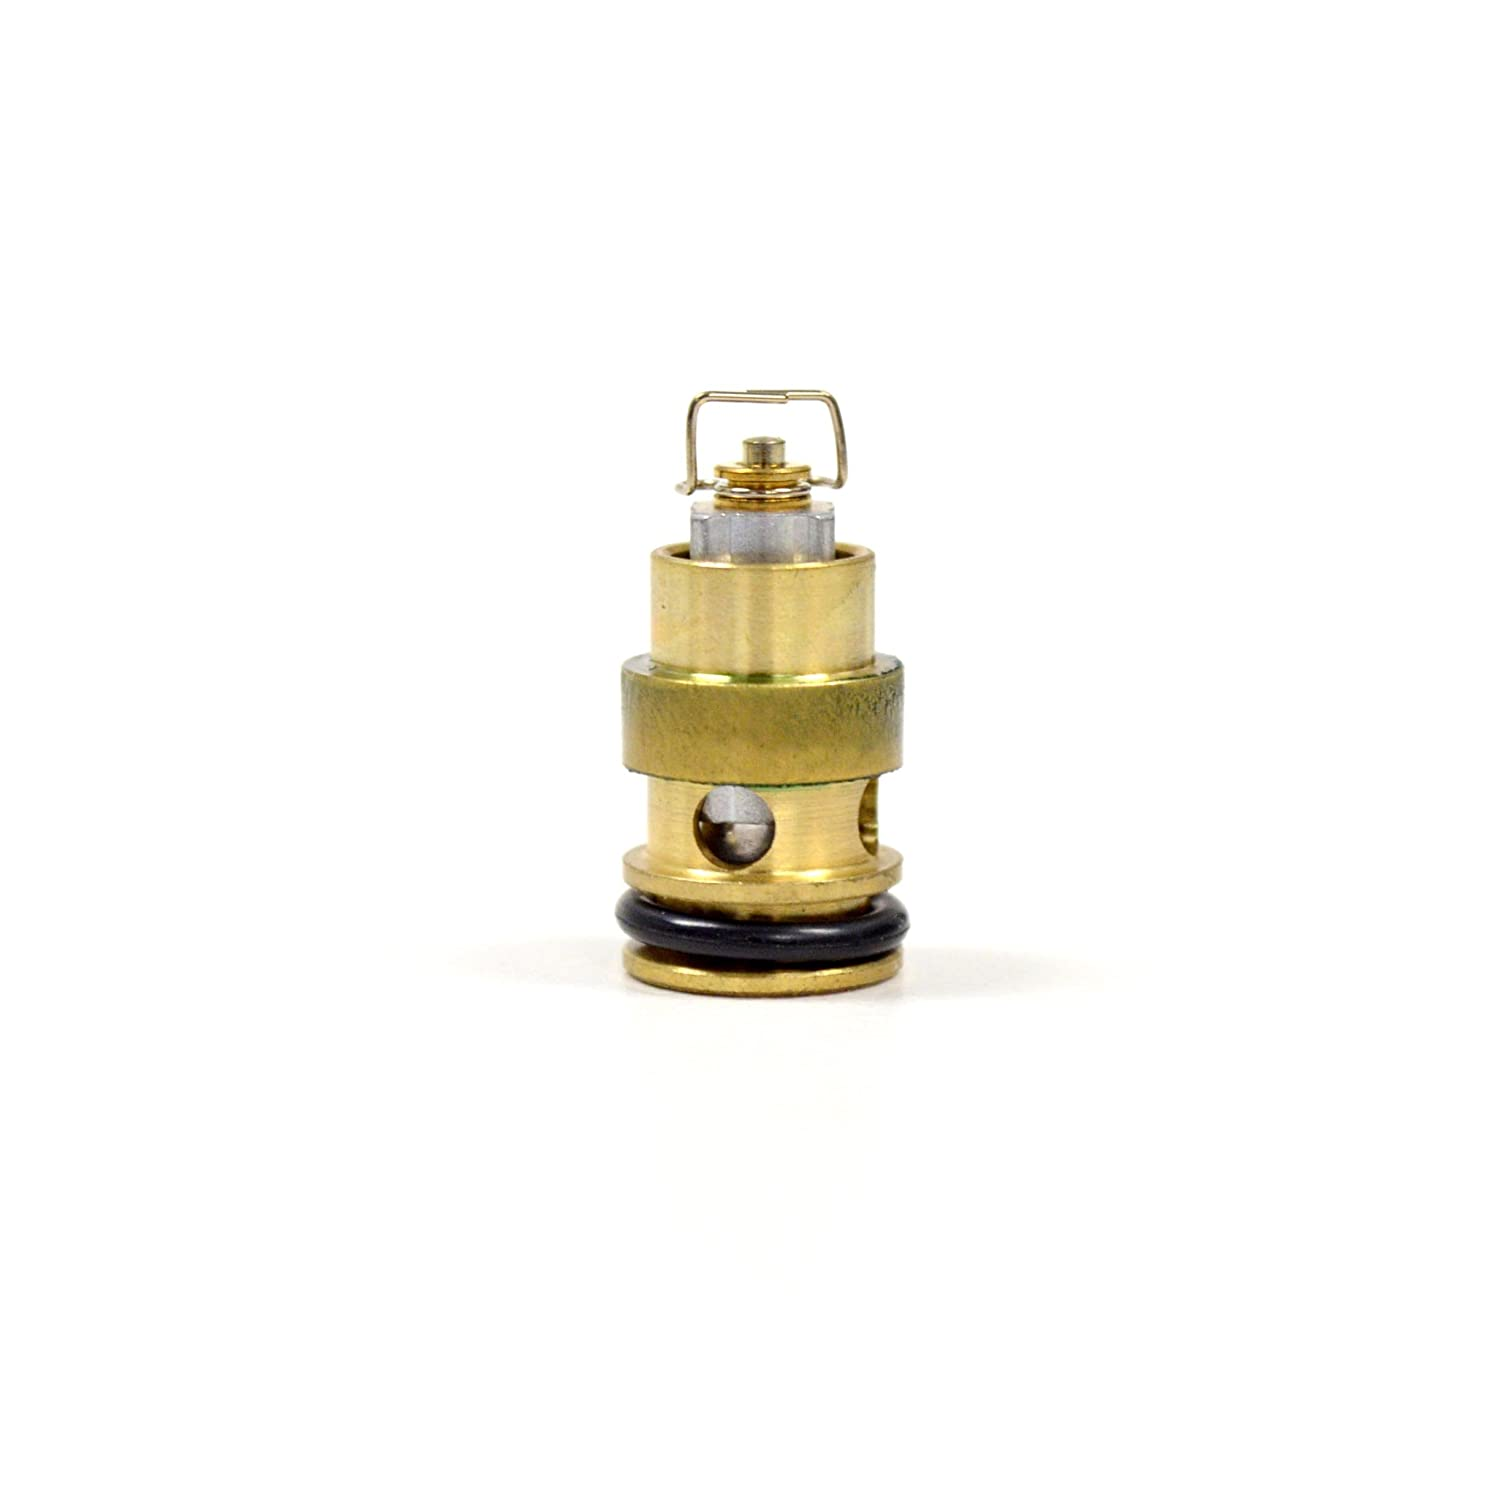 Genuine Genuine Mikuni TM40 HS40 Pumper Viton Tip Size 3.8 Needle & Seat 990-786-044-3.8 Sold Individually by Niche Cycle Supply